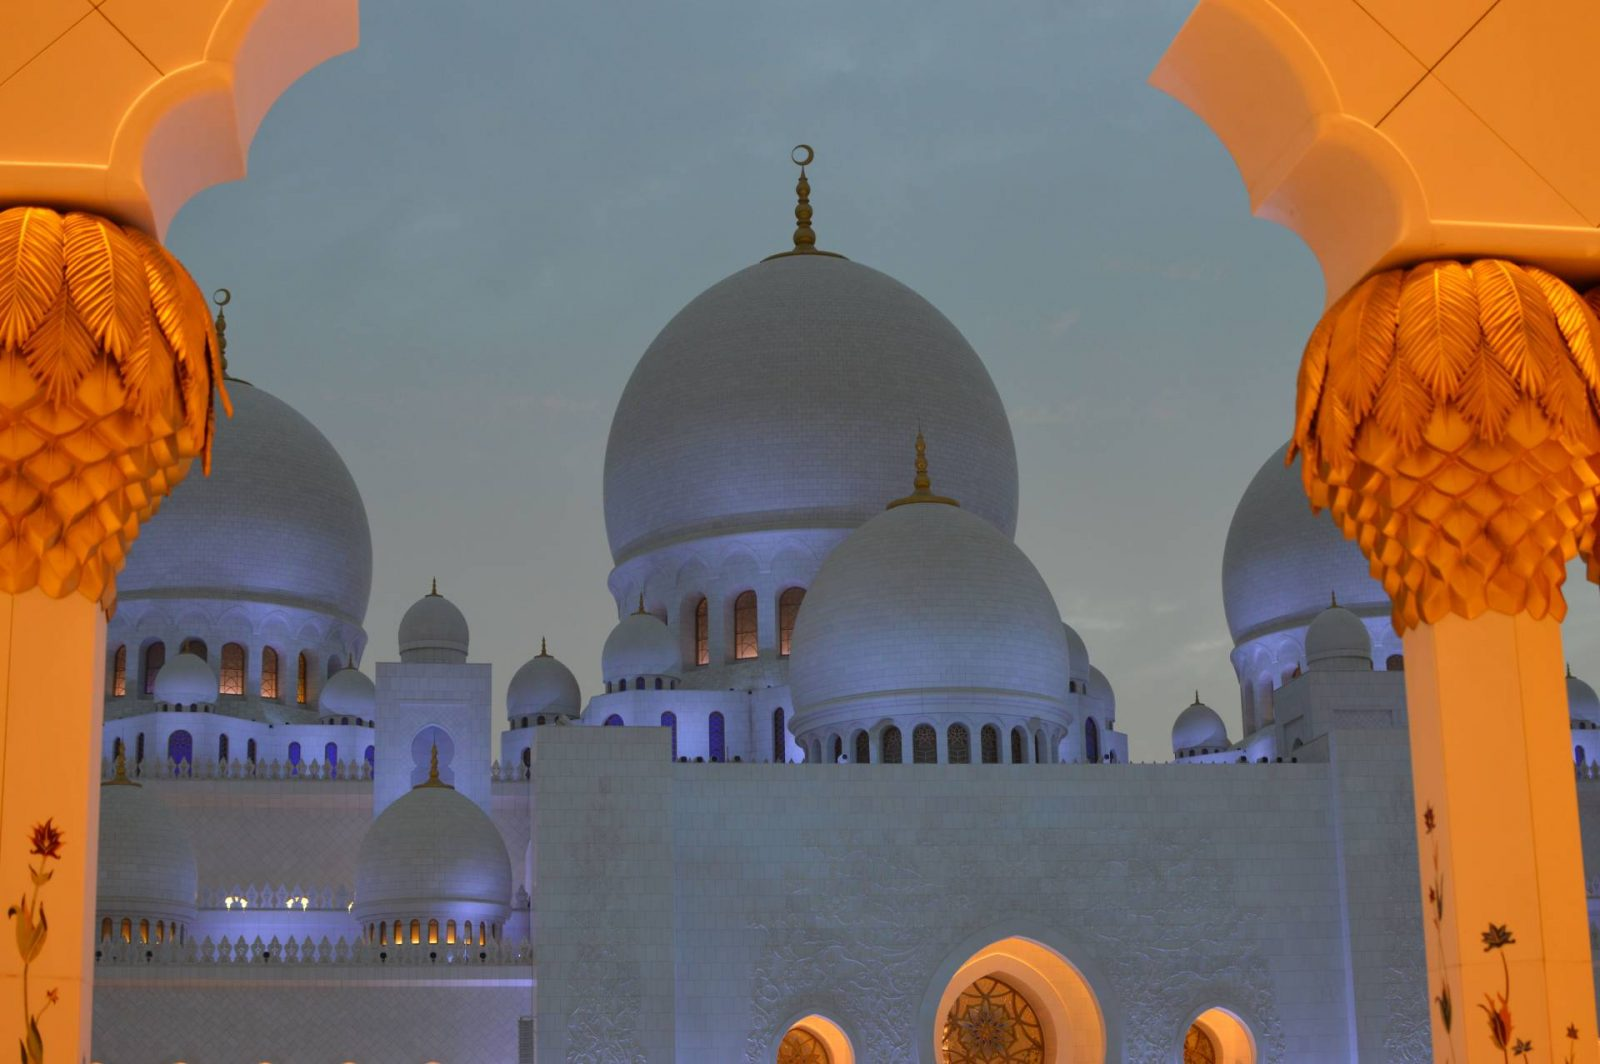 6 Things To Do in Abu Dhabi, Sheikh Zayed Grand Mosque Abu Dhabi at sunset